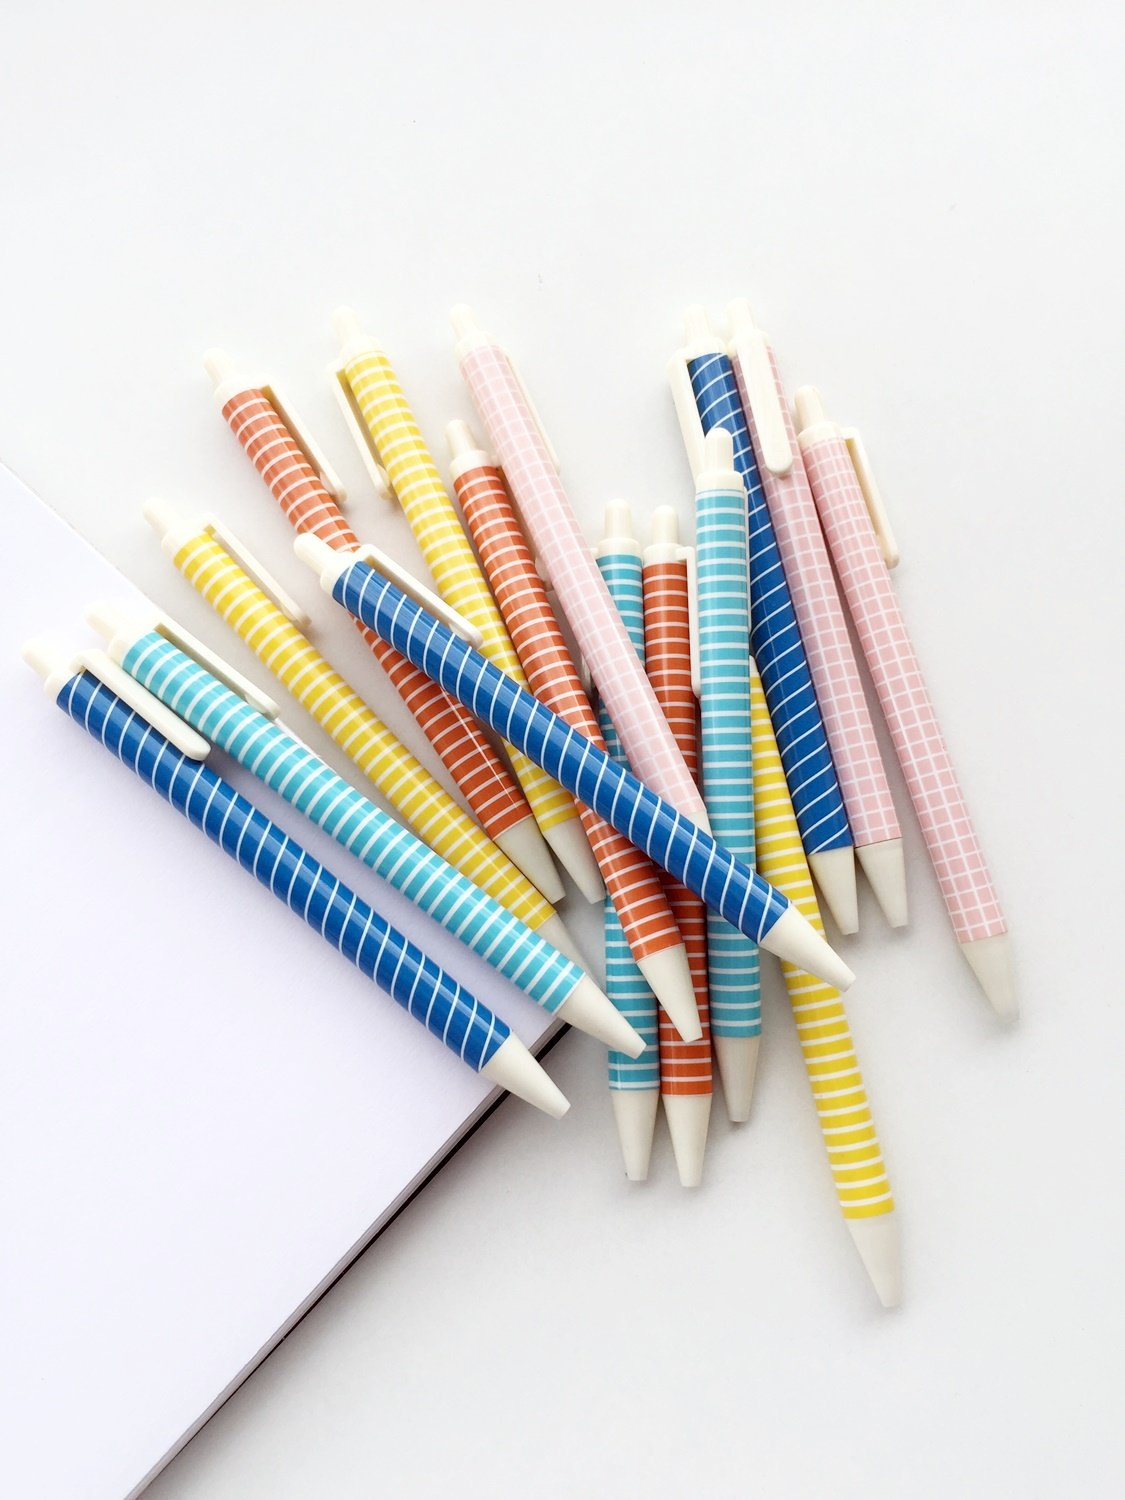 Striped & Grid Pens (Baby Pink, Light Blue, Orange, Yellow & Blue) | Set of 5 | Black Ink